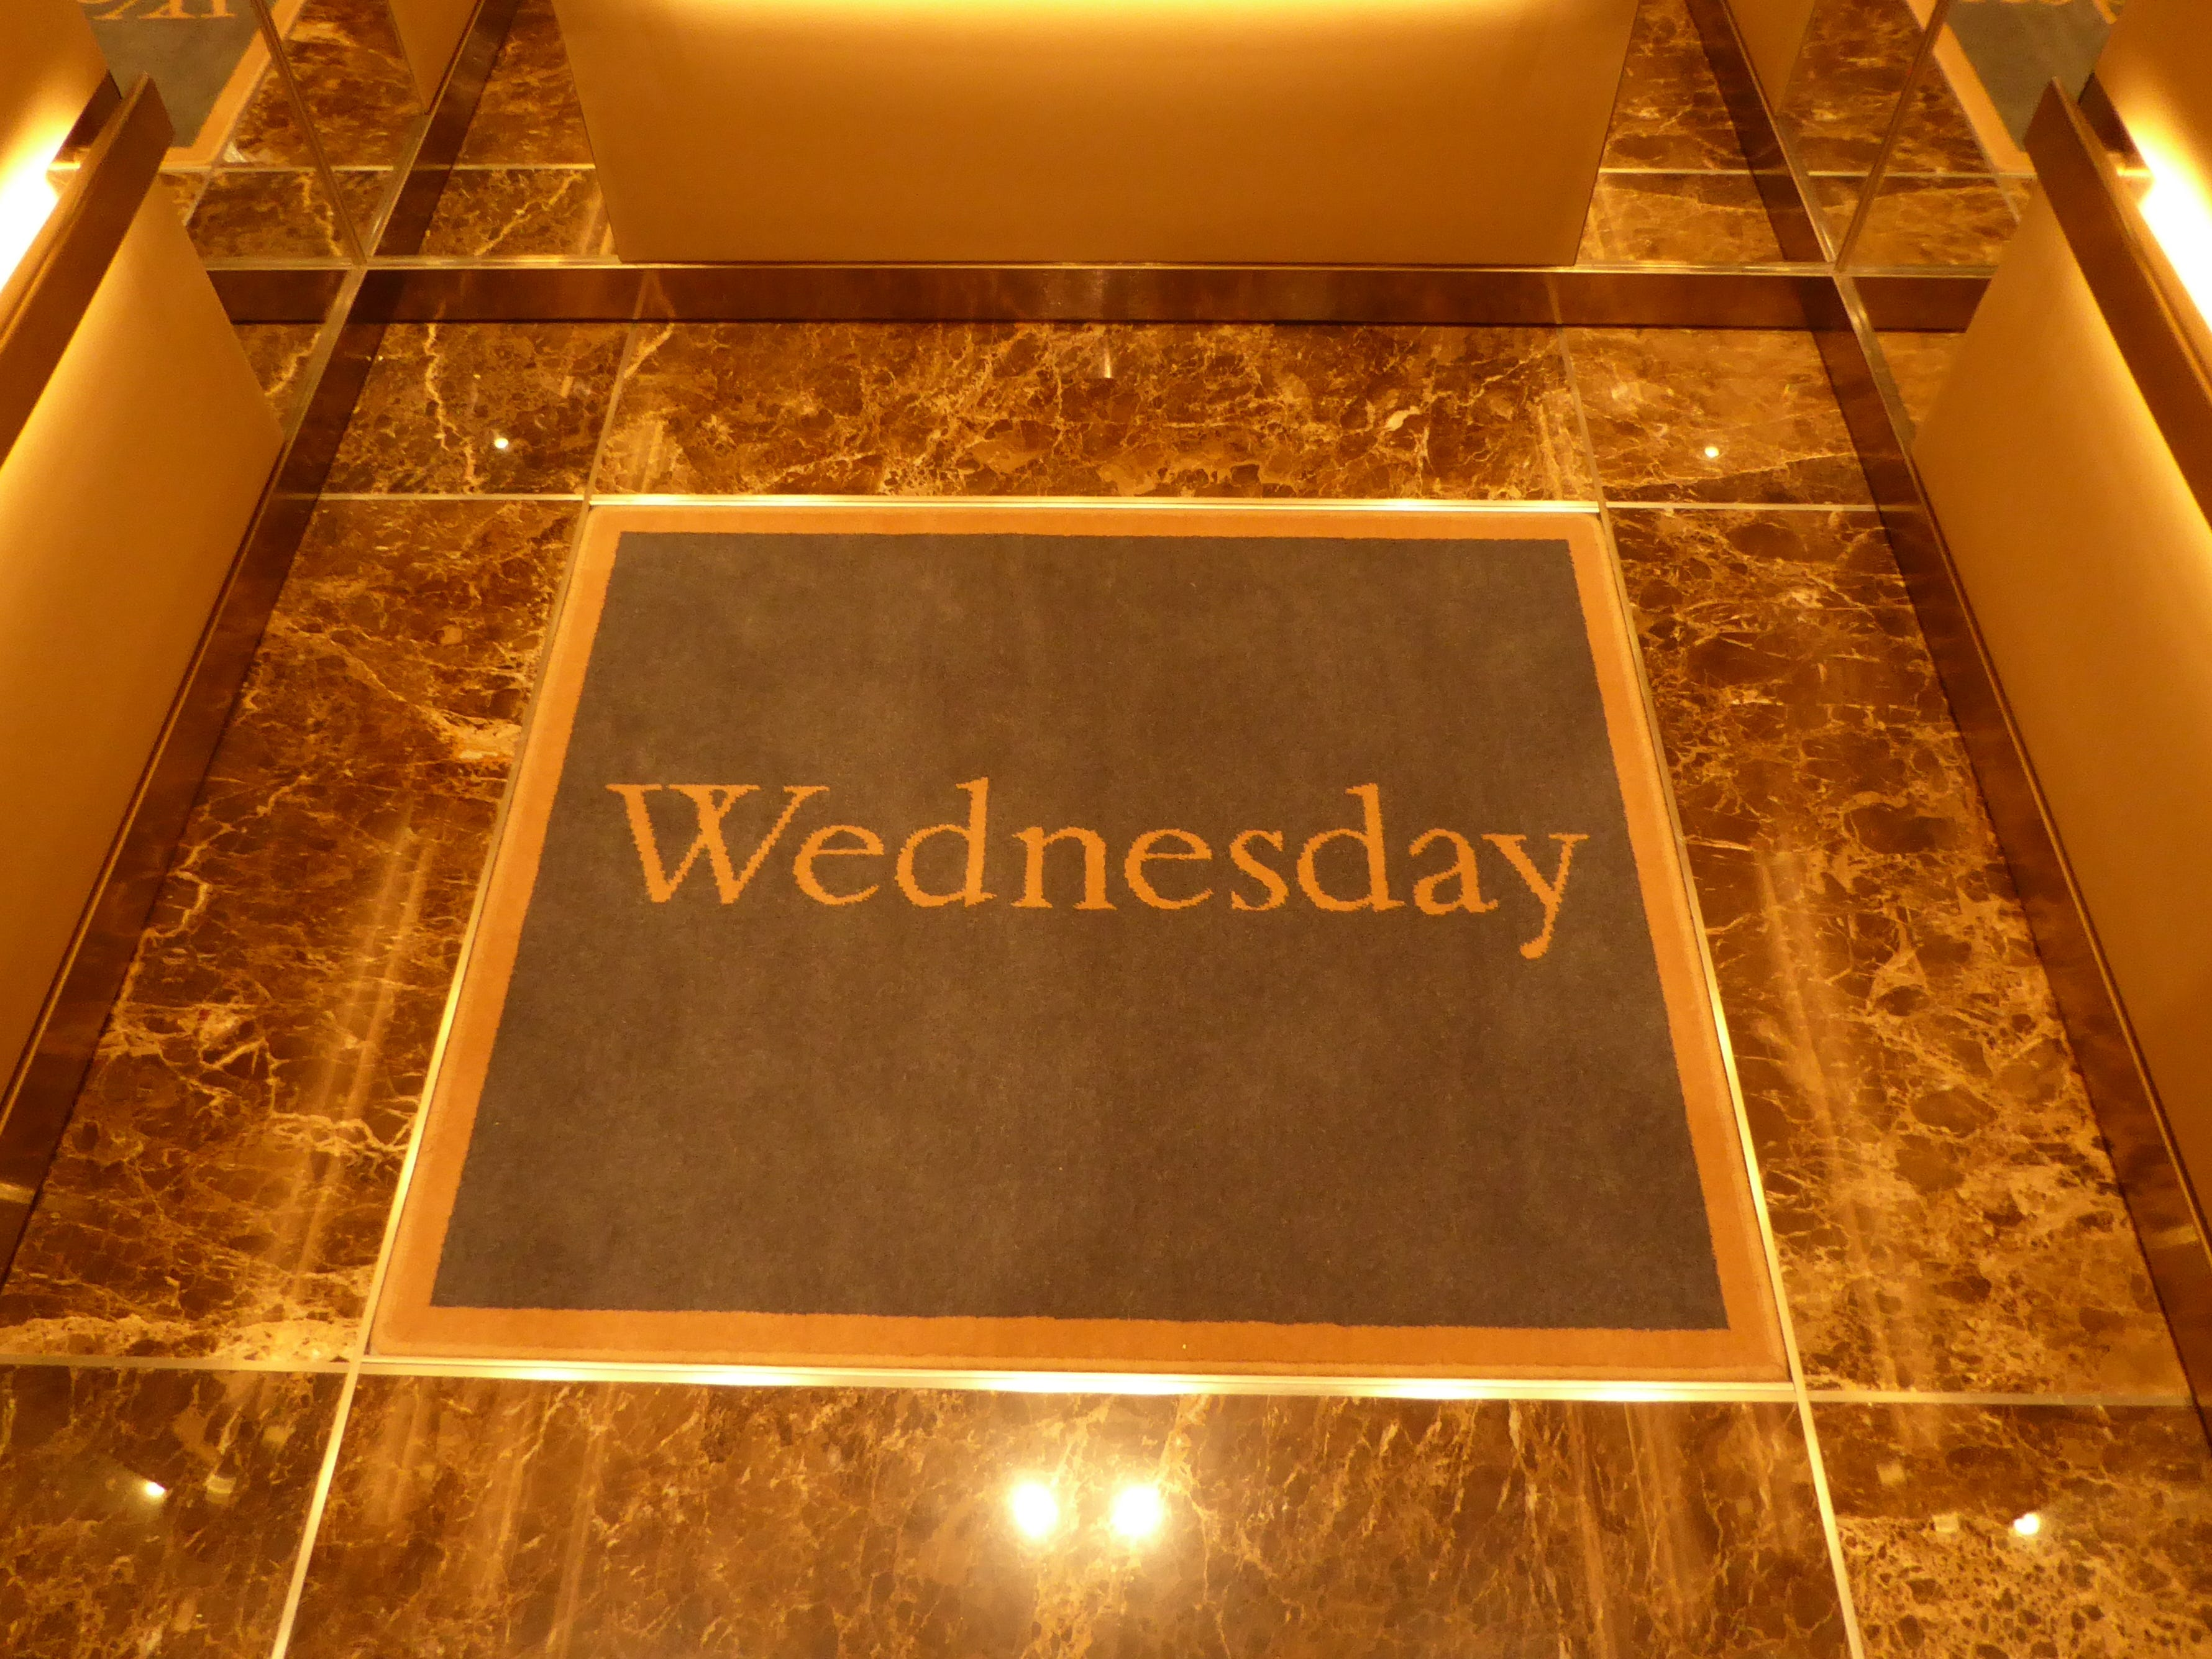 The Nieuw Statendam has three main stairtowers and no less than 12 elevators.  In HAL tradition, the elevators feature a rug that reminds guests which day of the week it is.